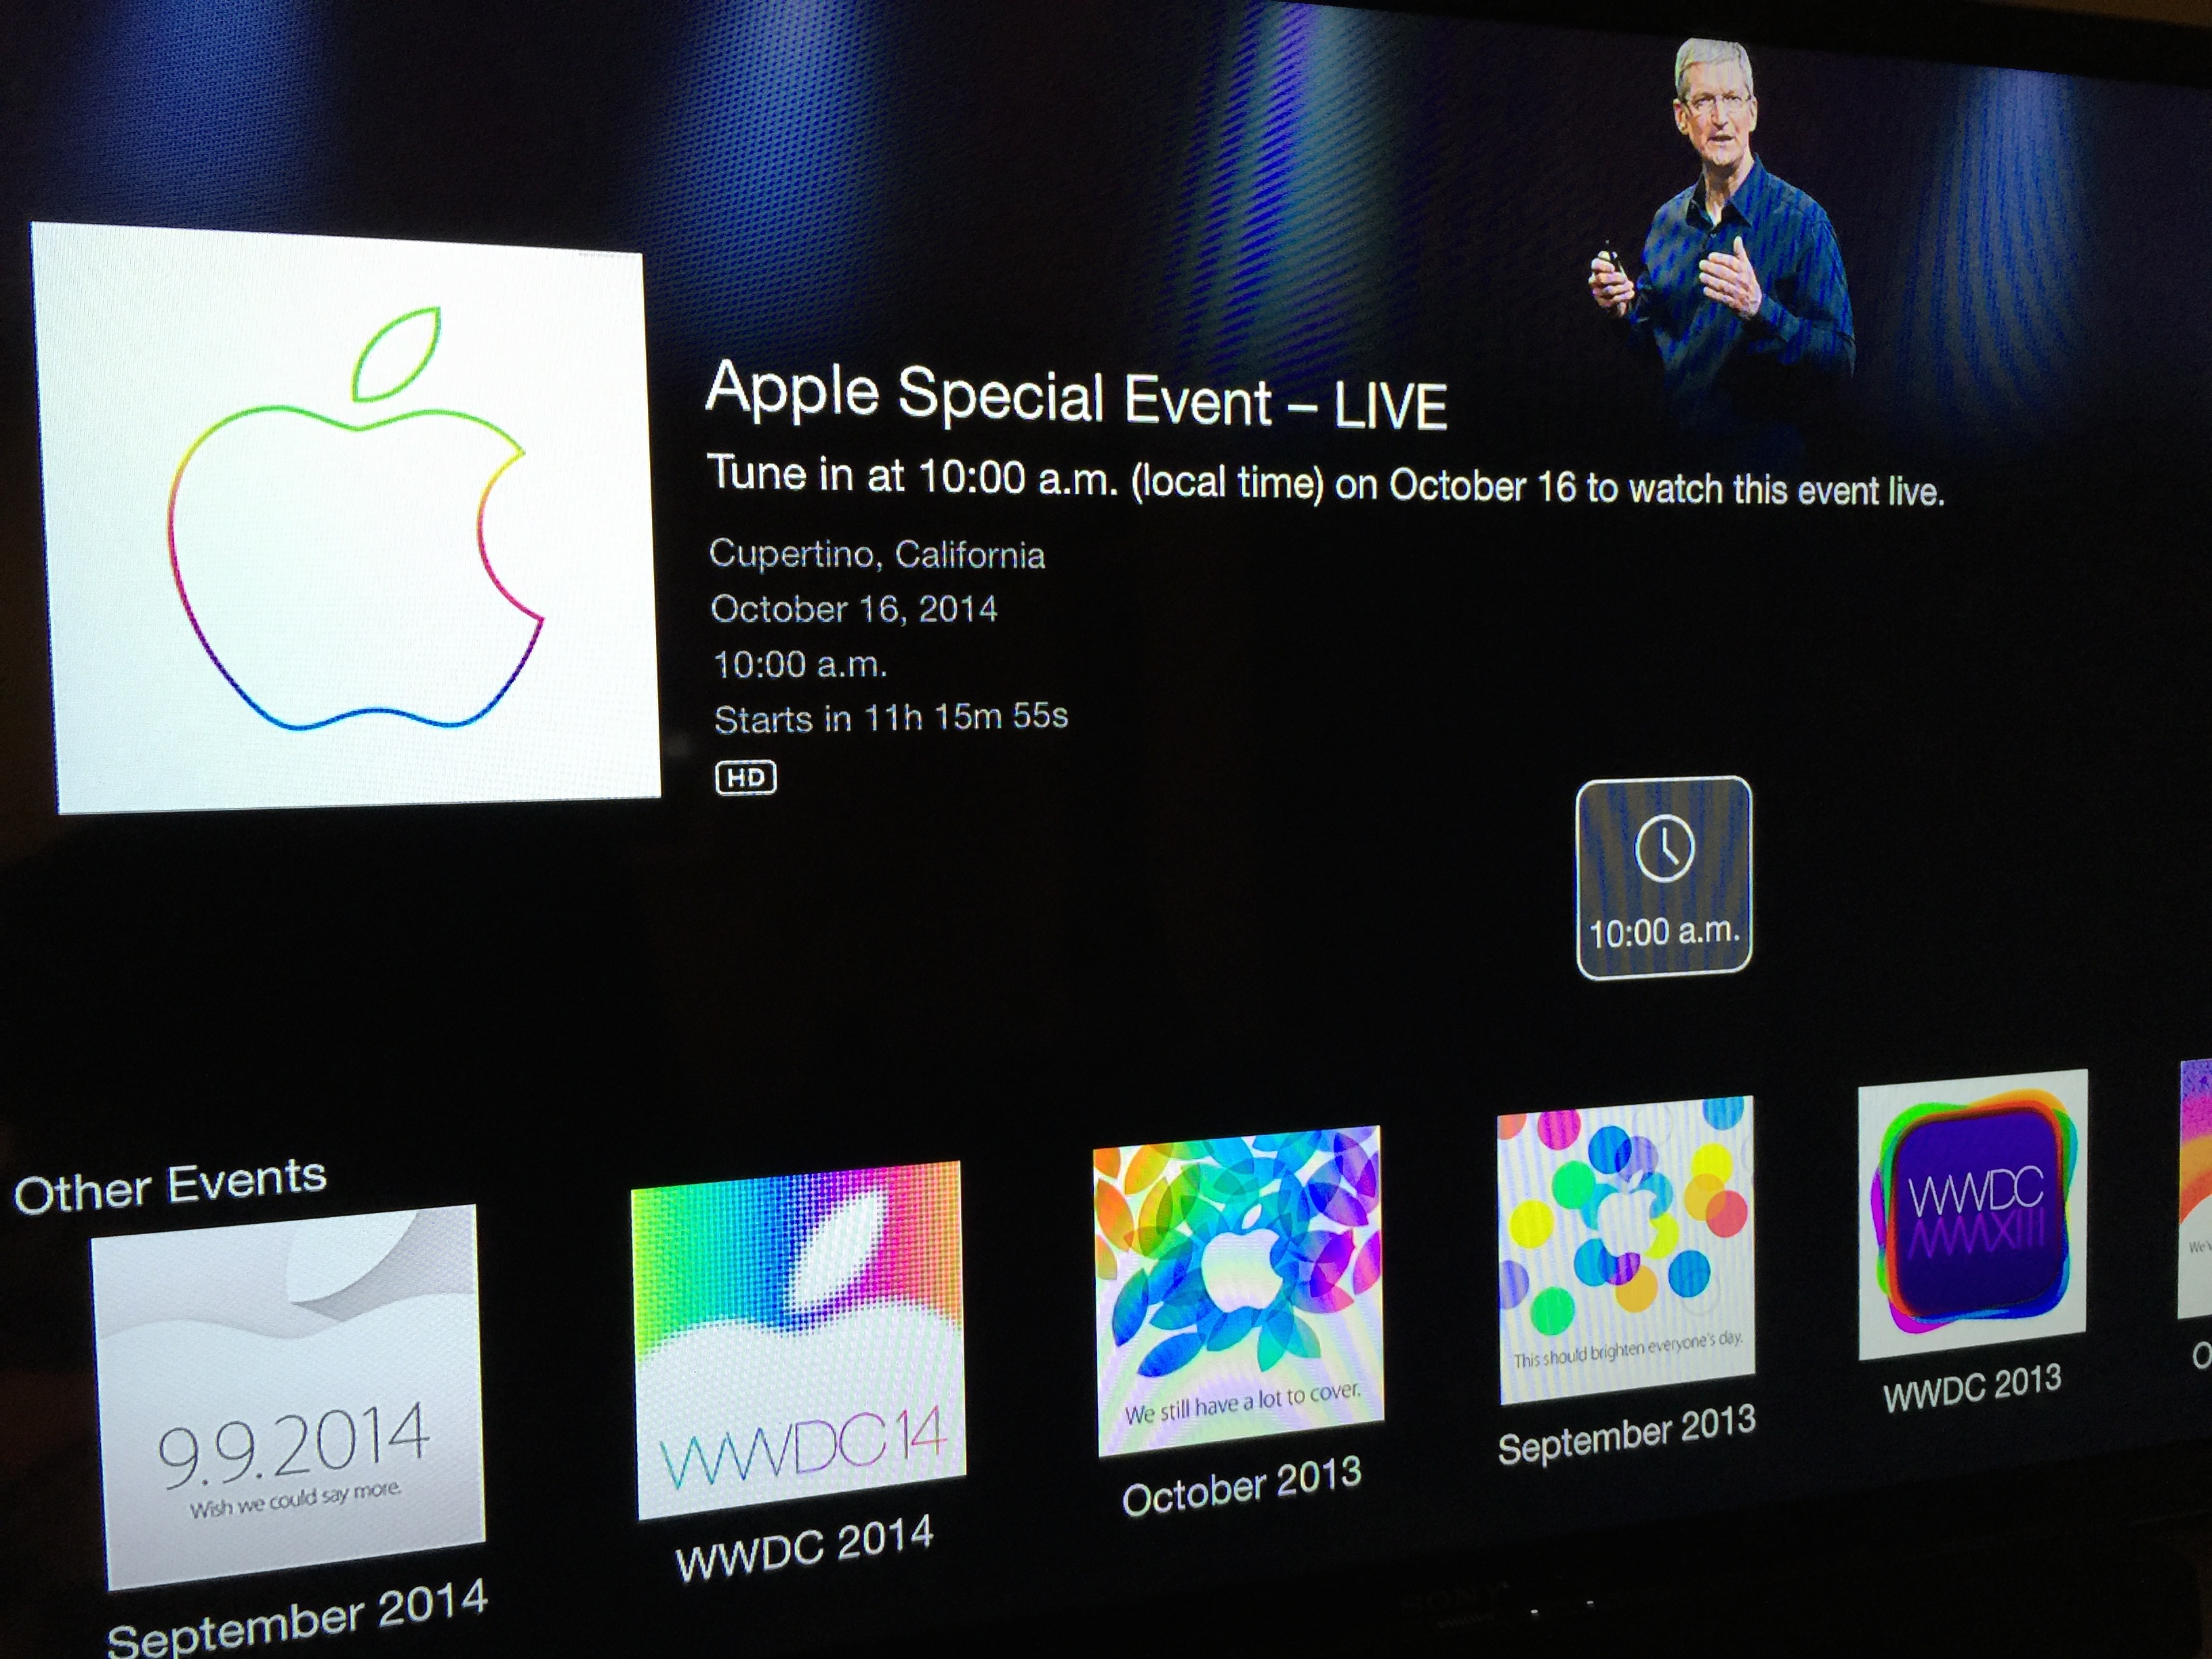 appletv-ipad-event